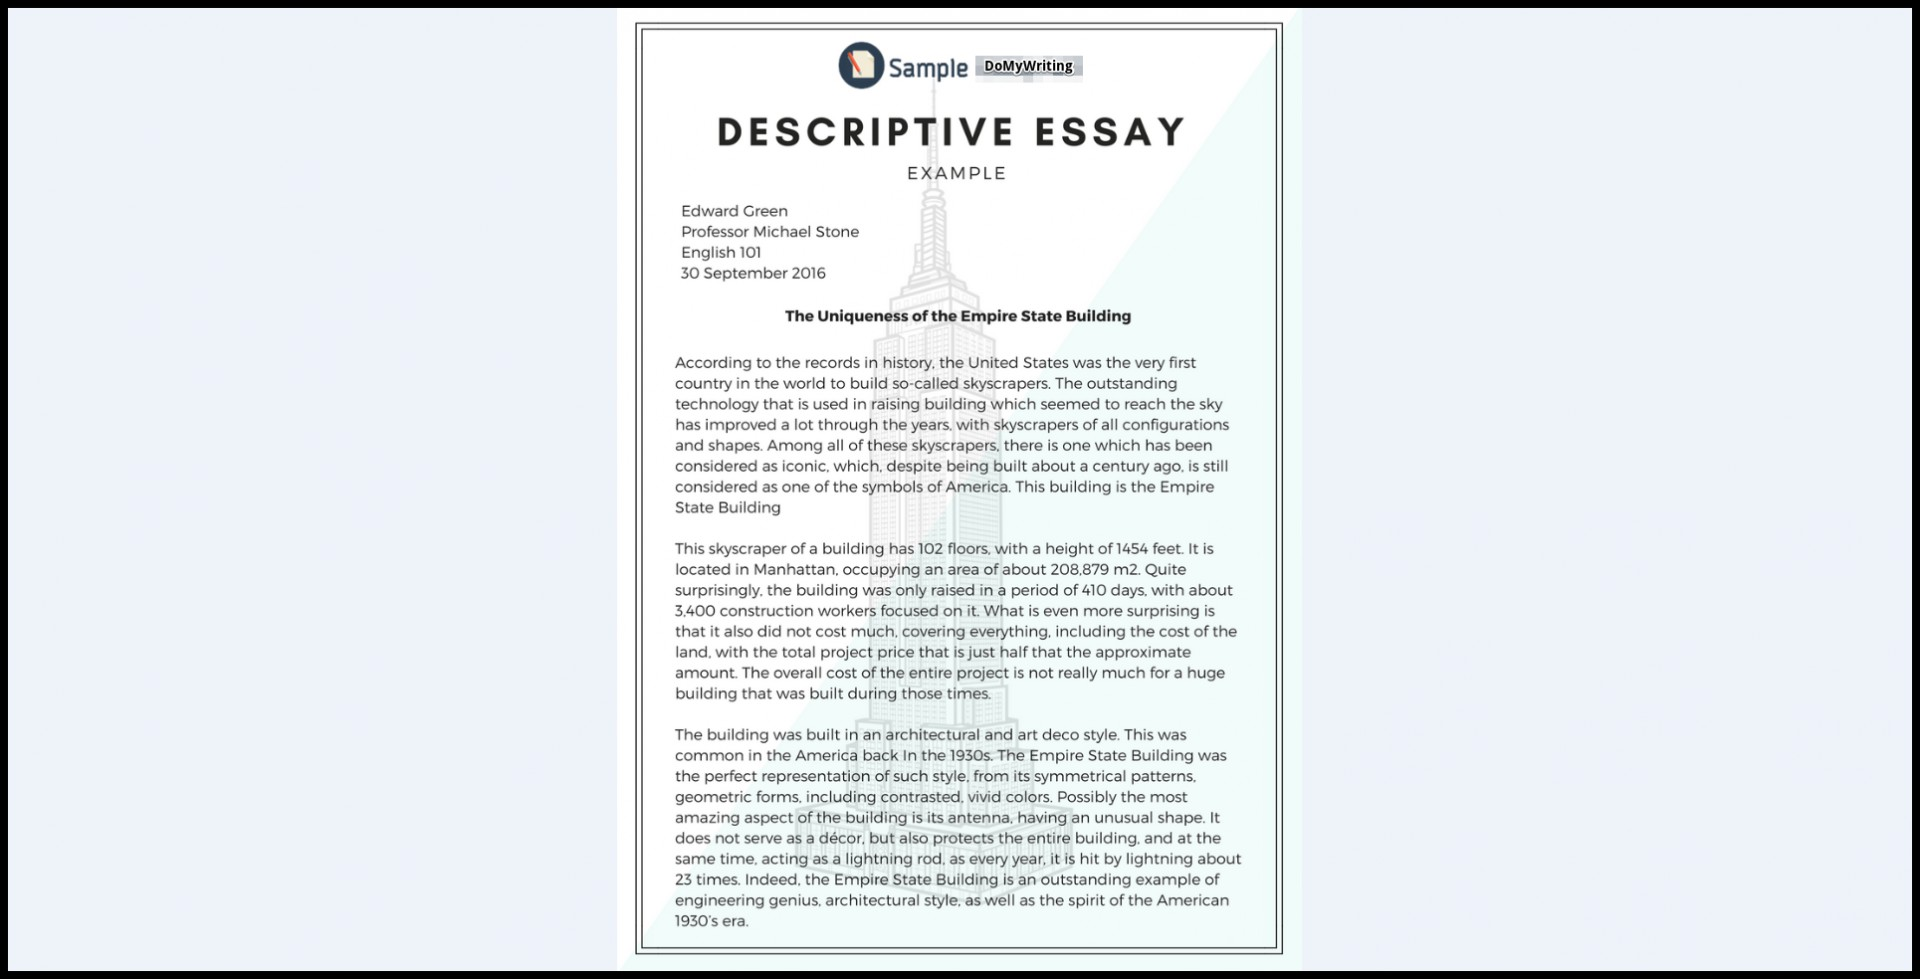 005 Essay Example Descriptive Impressive About A Pet Place Format 1920